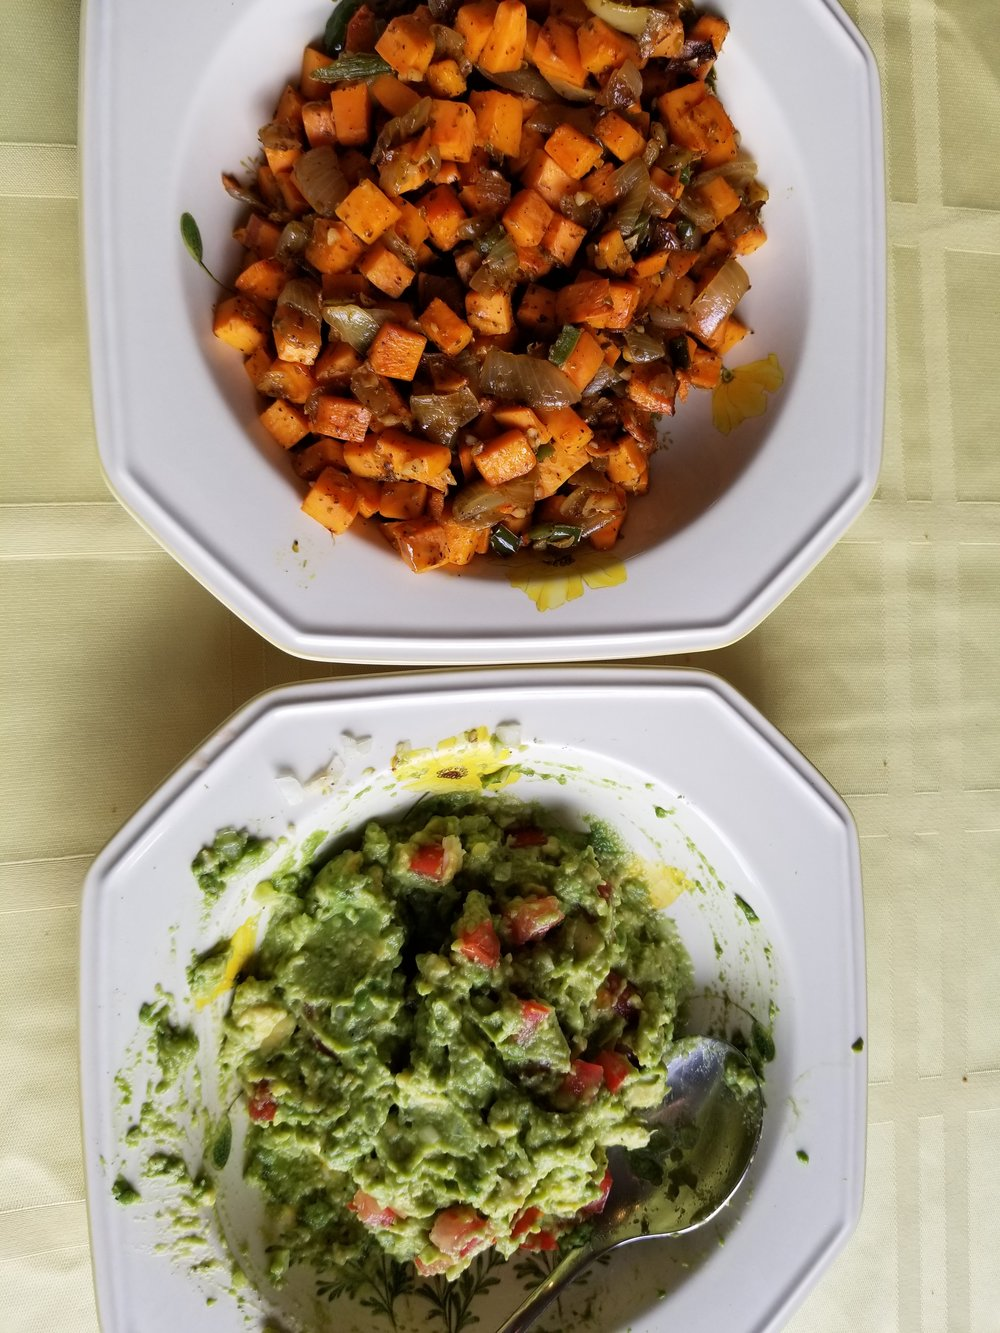 "This is a plate of sweet potatoes and a side of guacamole. This was my husband and my Thanksgiving ""feast"". We are really grateful for all the friends we have made along this journey. It is not traditional, but the flavors of the sweet potatoes were very satisfying."